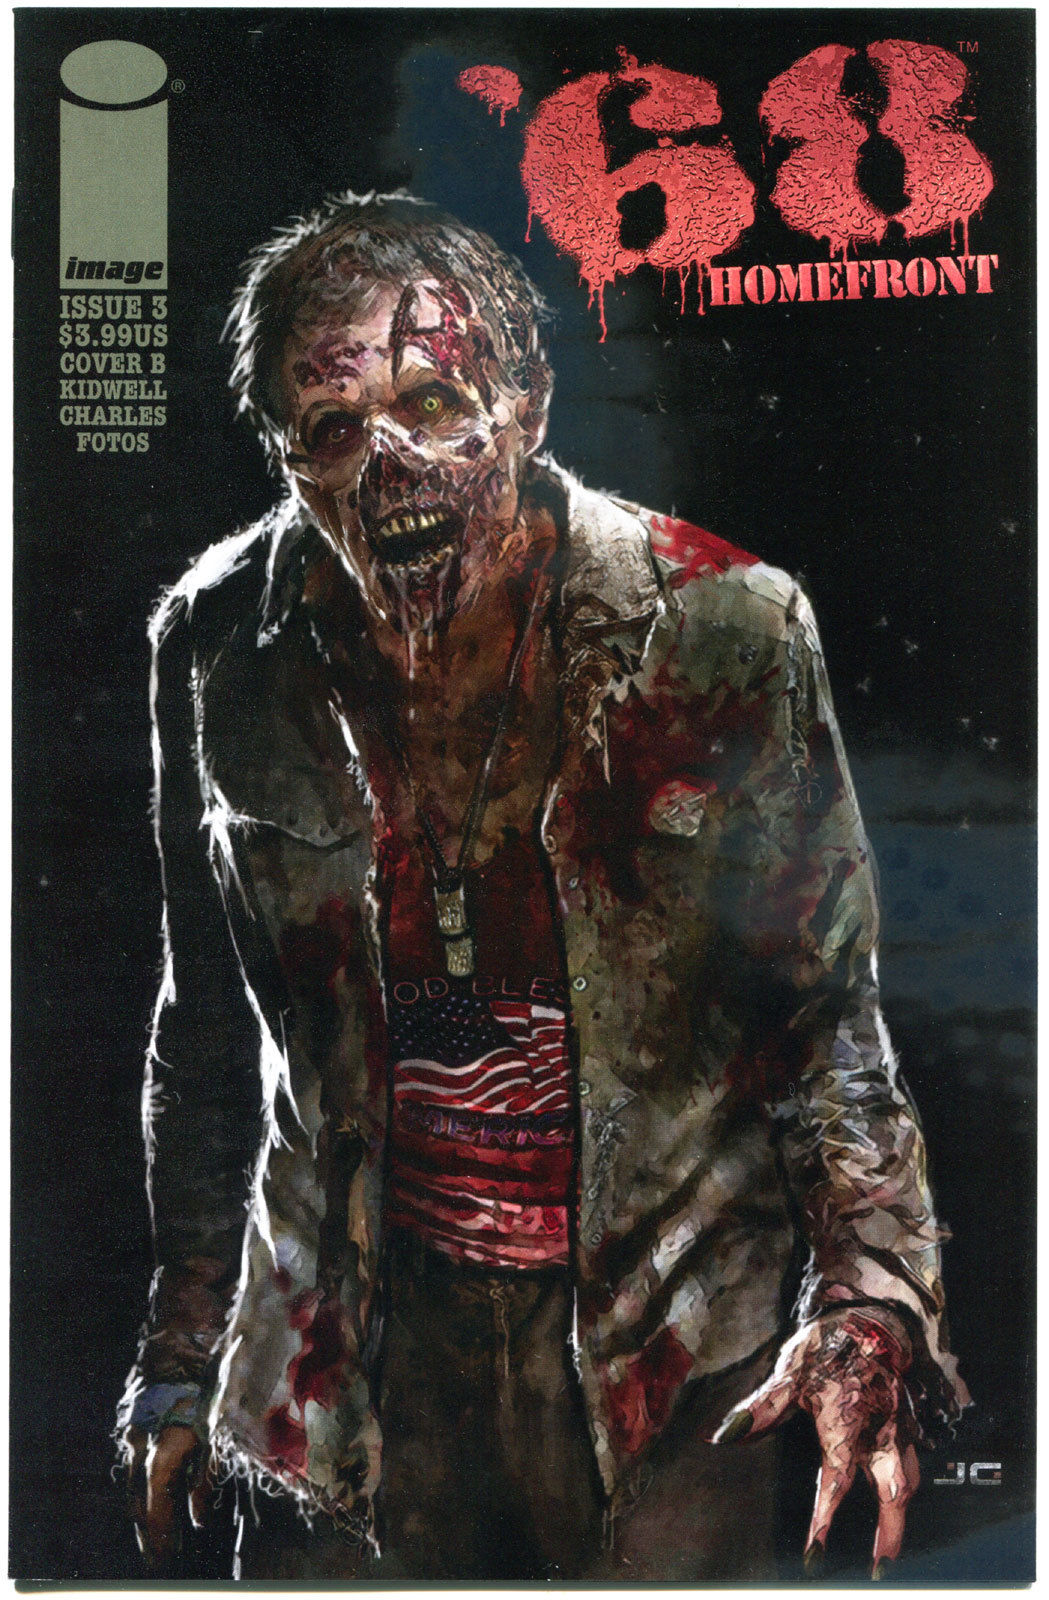 '68 HOMEFRONT #3 B, NM,1st Print, Zombie, Walking Dead, 2014, more in store